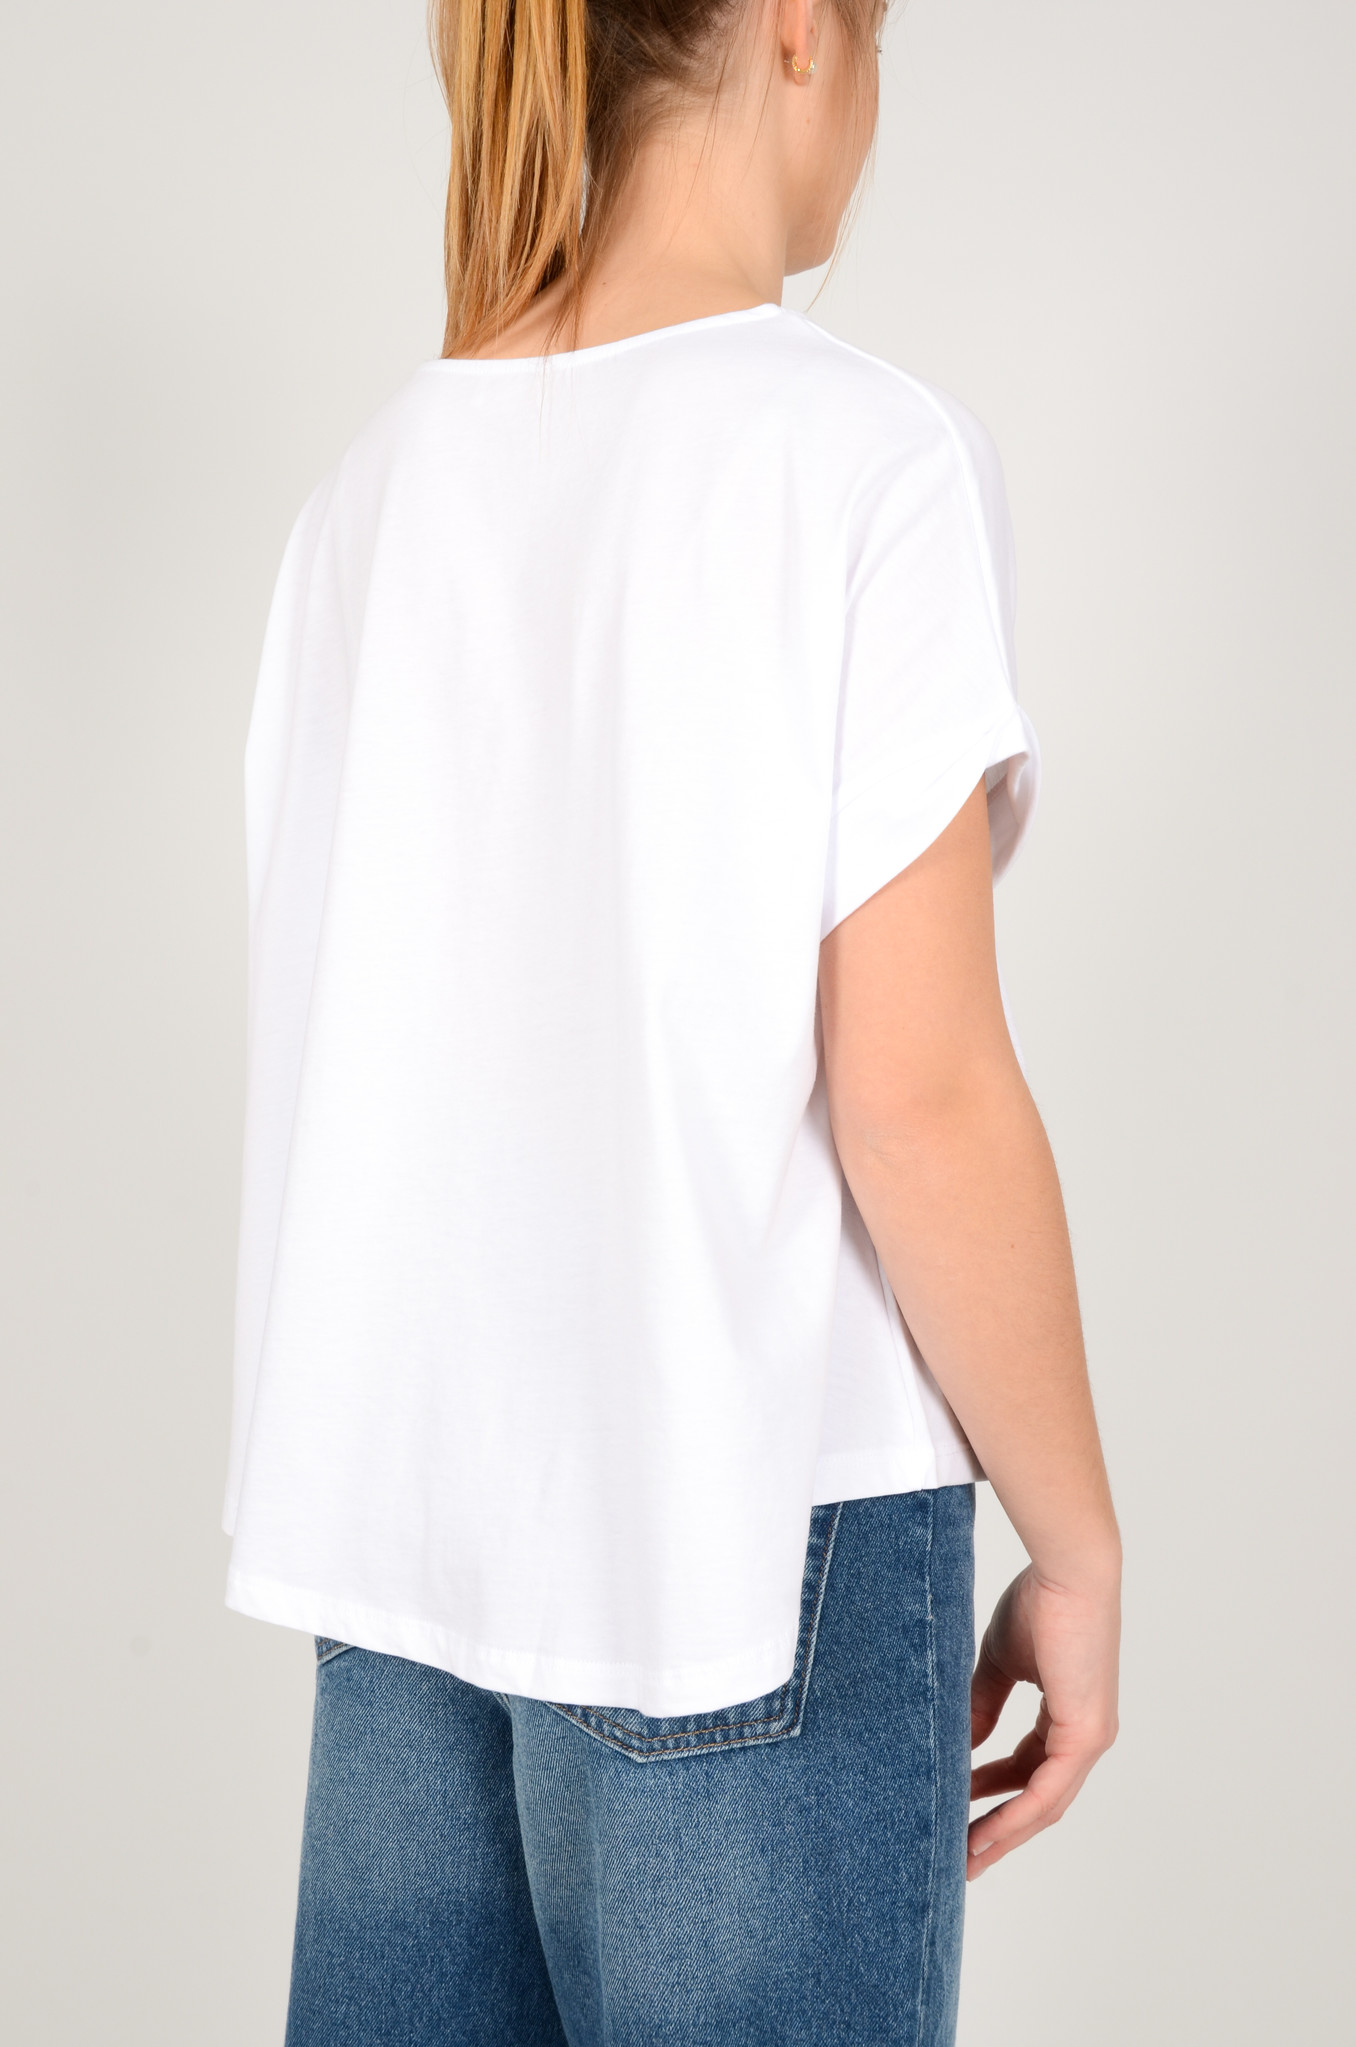 A SHAPE TEE IN WHITE-3